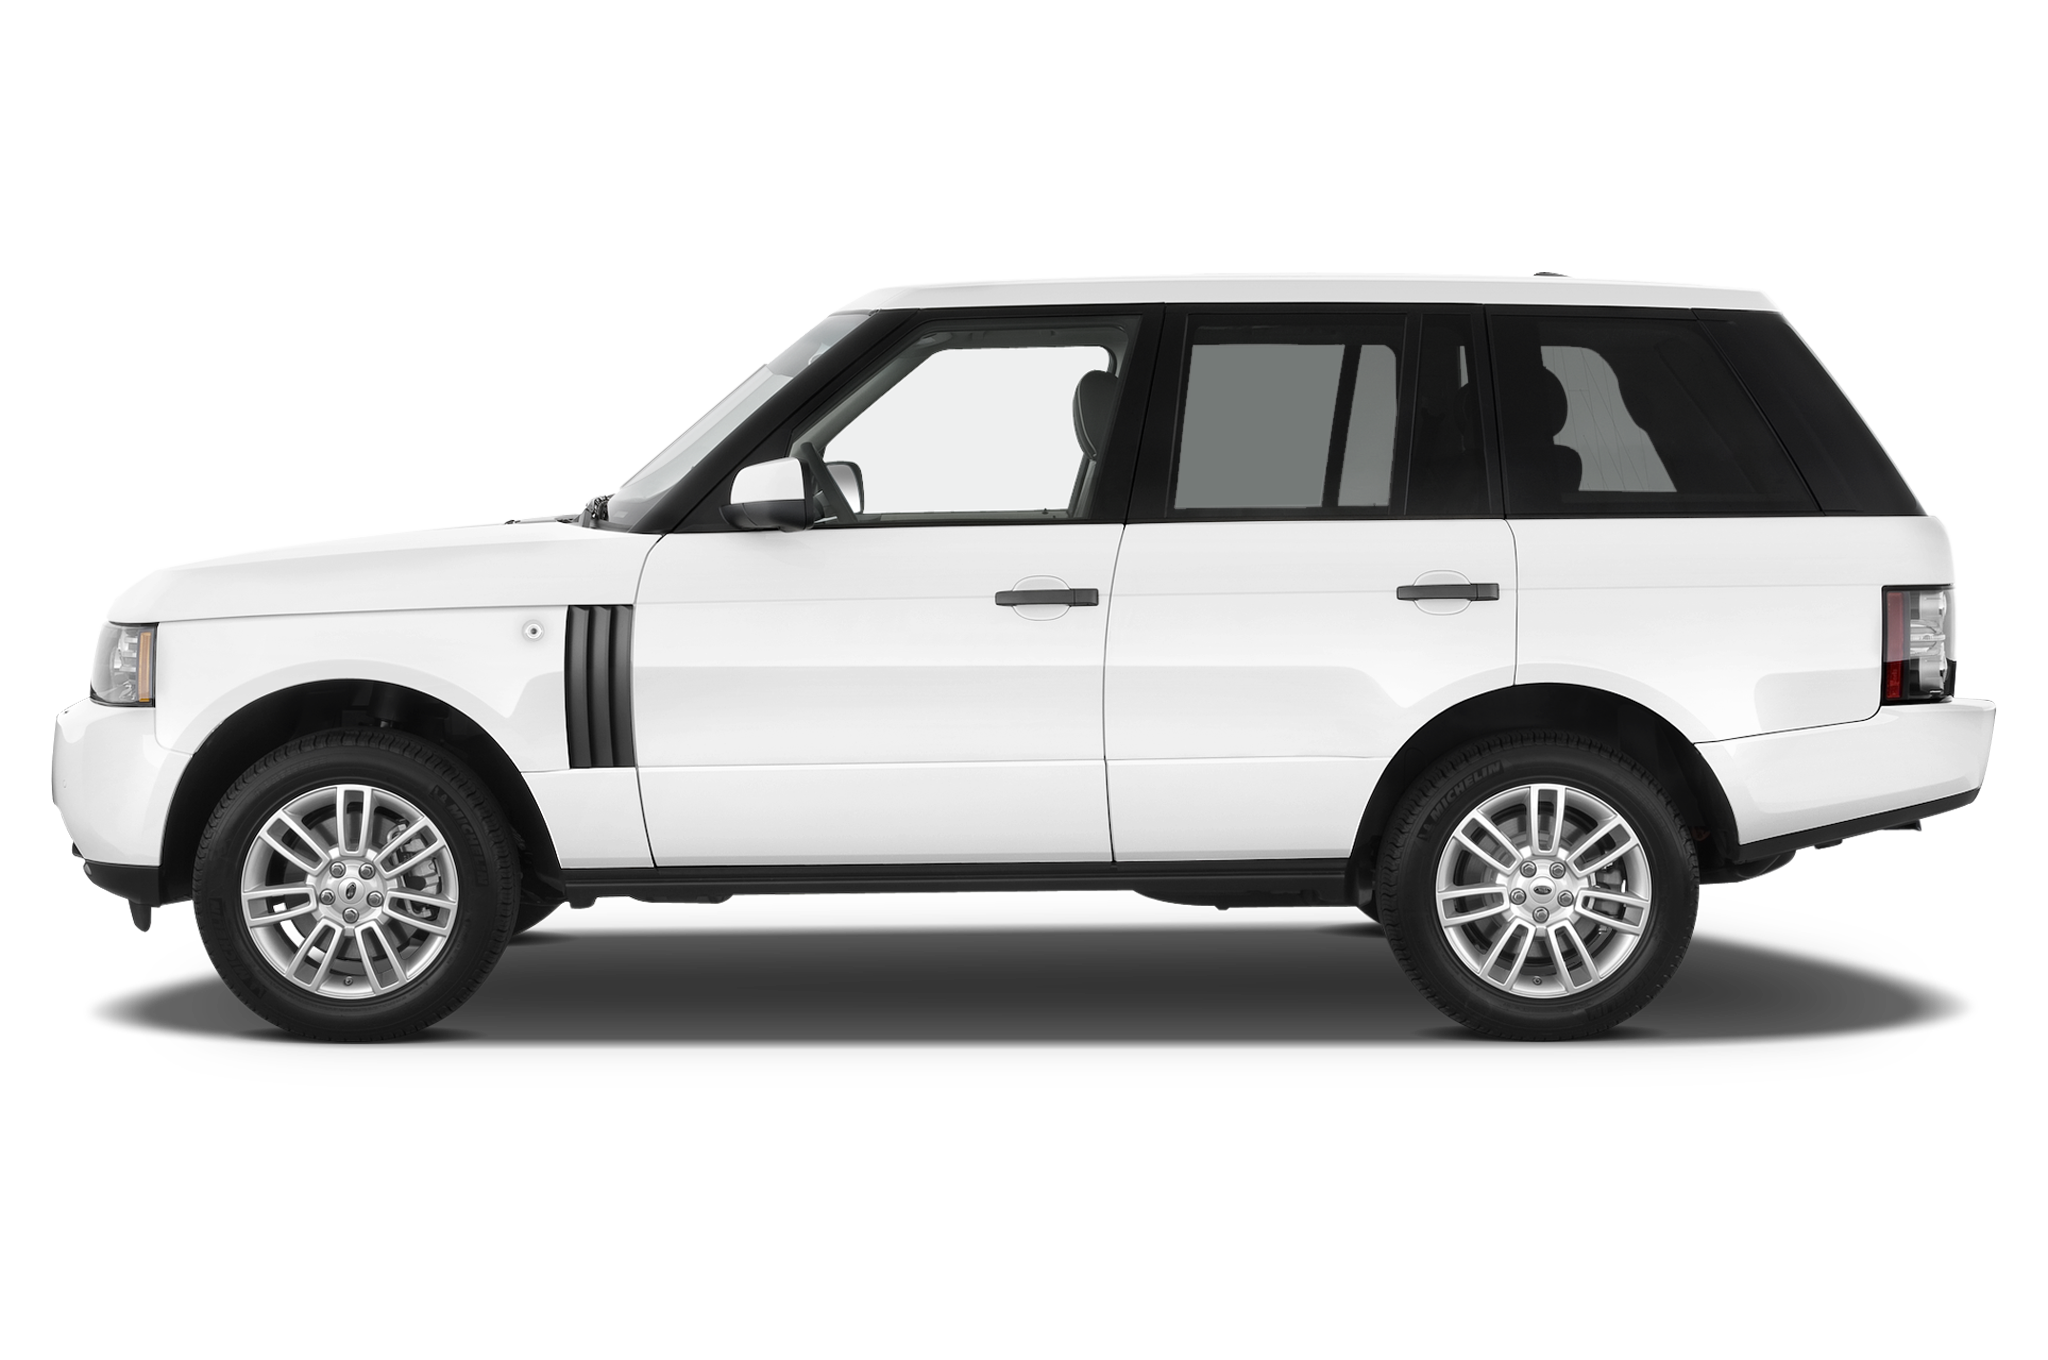 2010 land rover range rover supercharged - automobile magazine